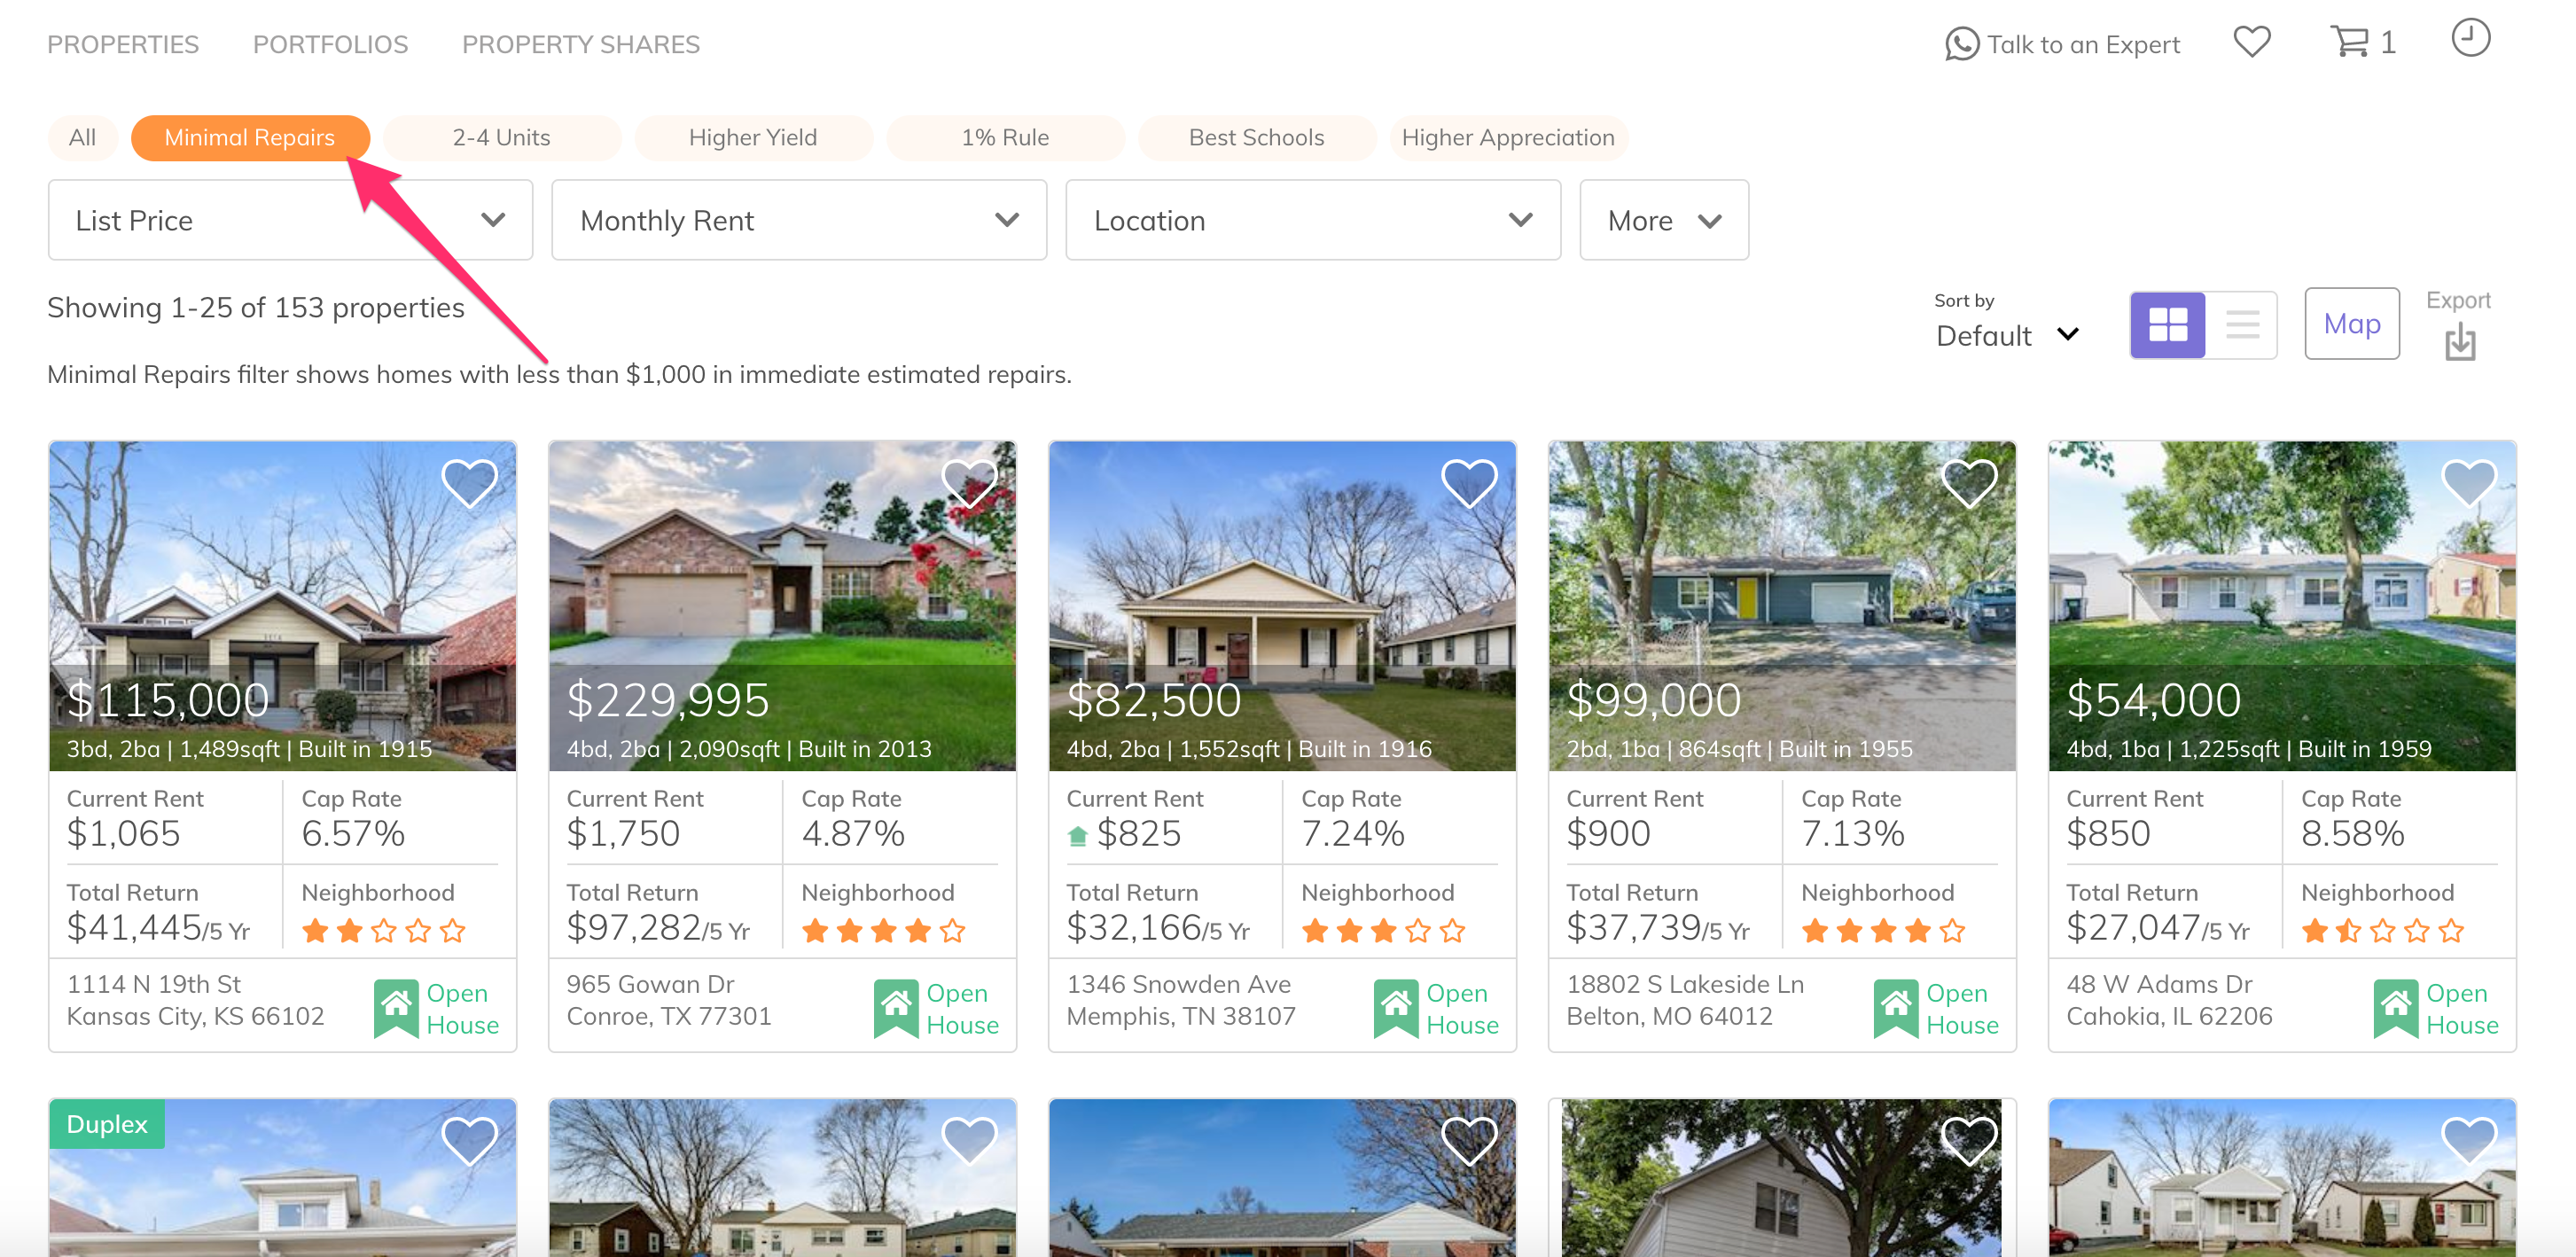 Rental_Properties___Investment_Property_For_Sale___Roofstock-3